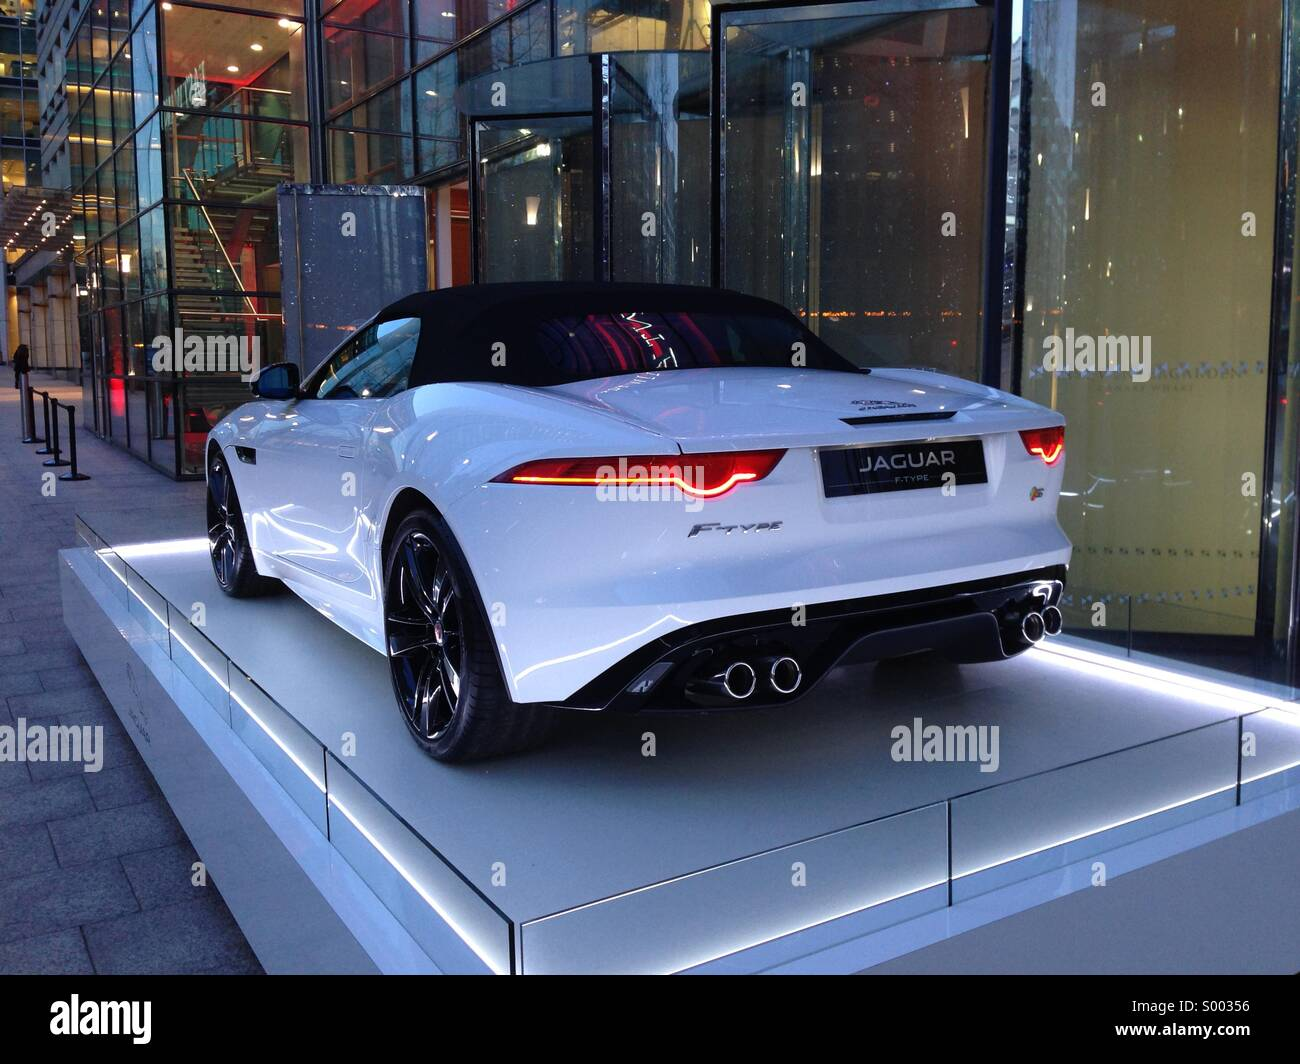 the new f type jaguar outside east winter gardens canary wharf